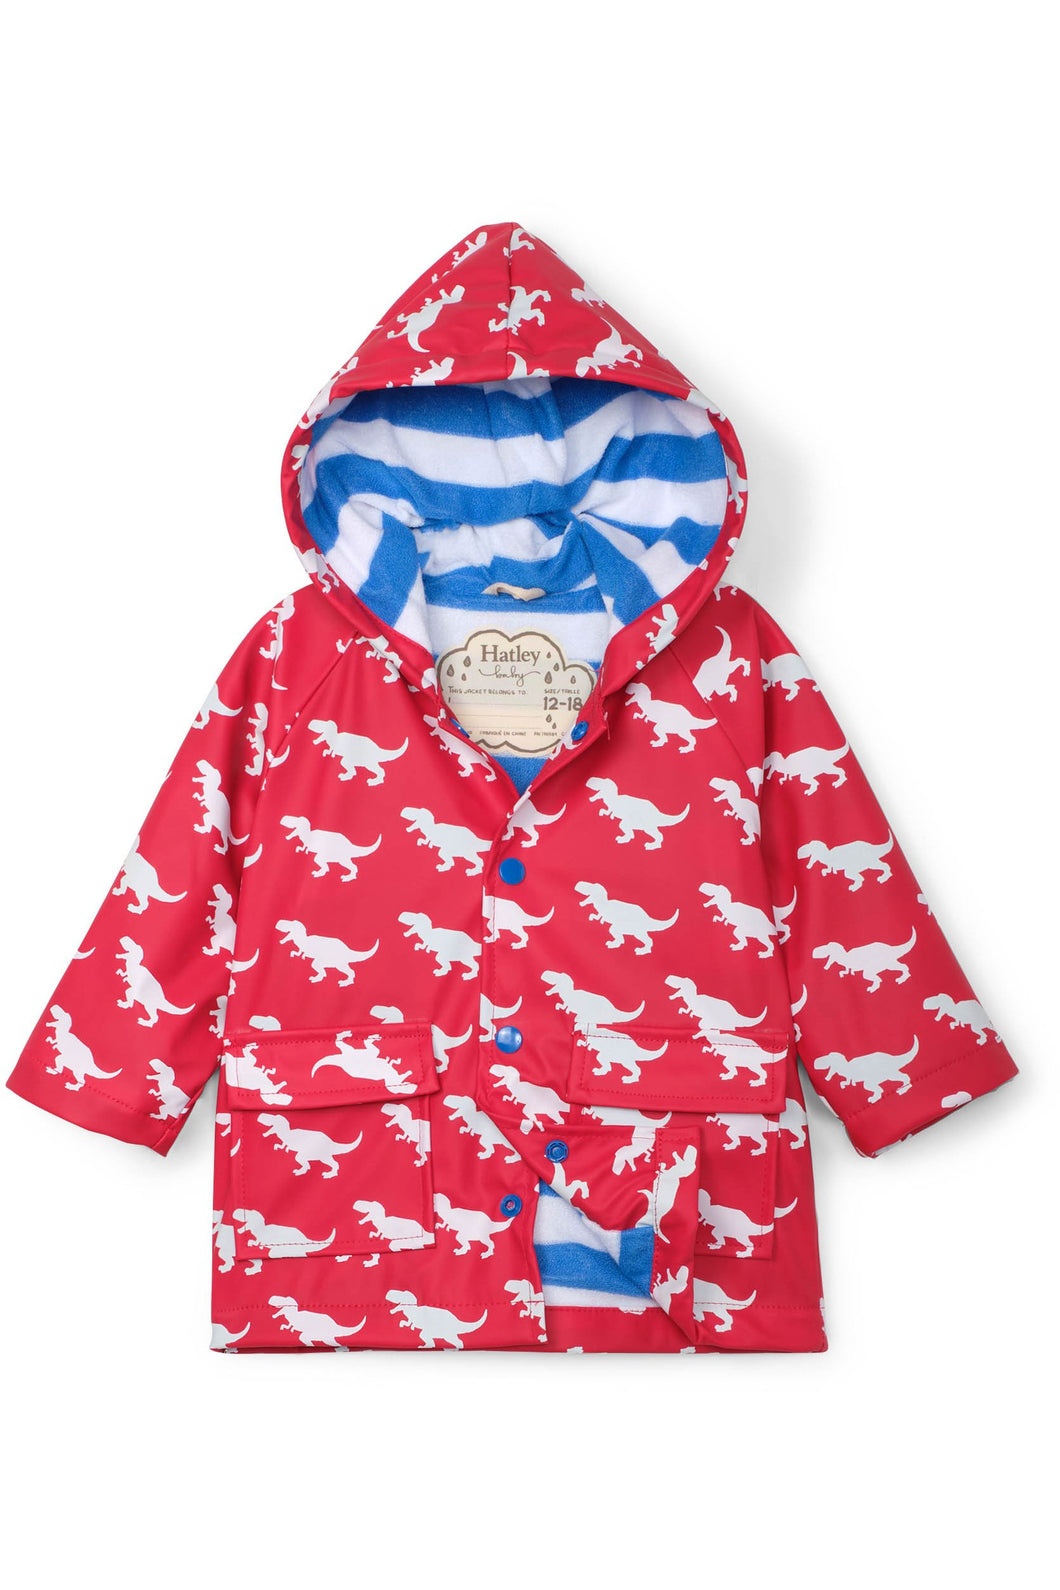 DINOSAUR COLOR CHANGE RAIN JACKET